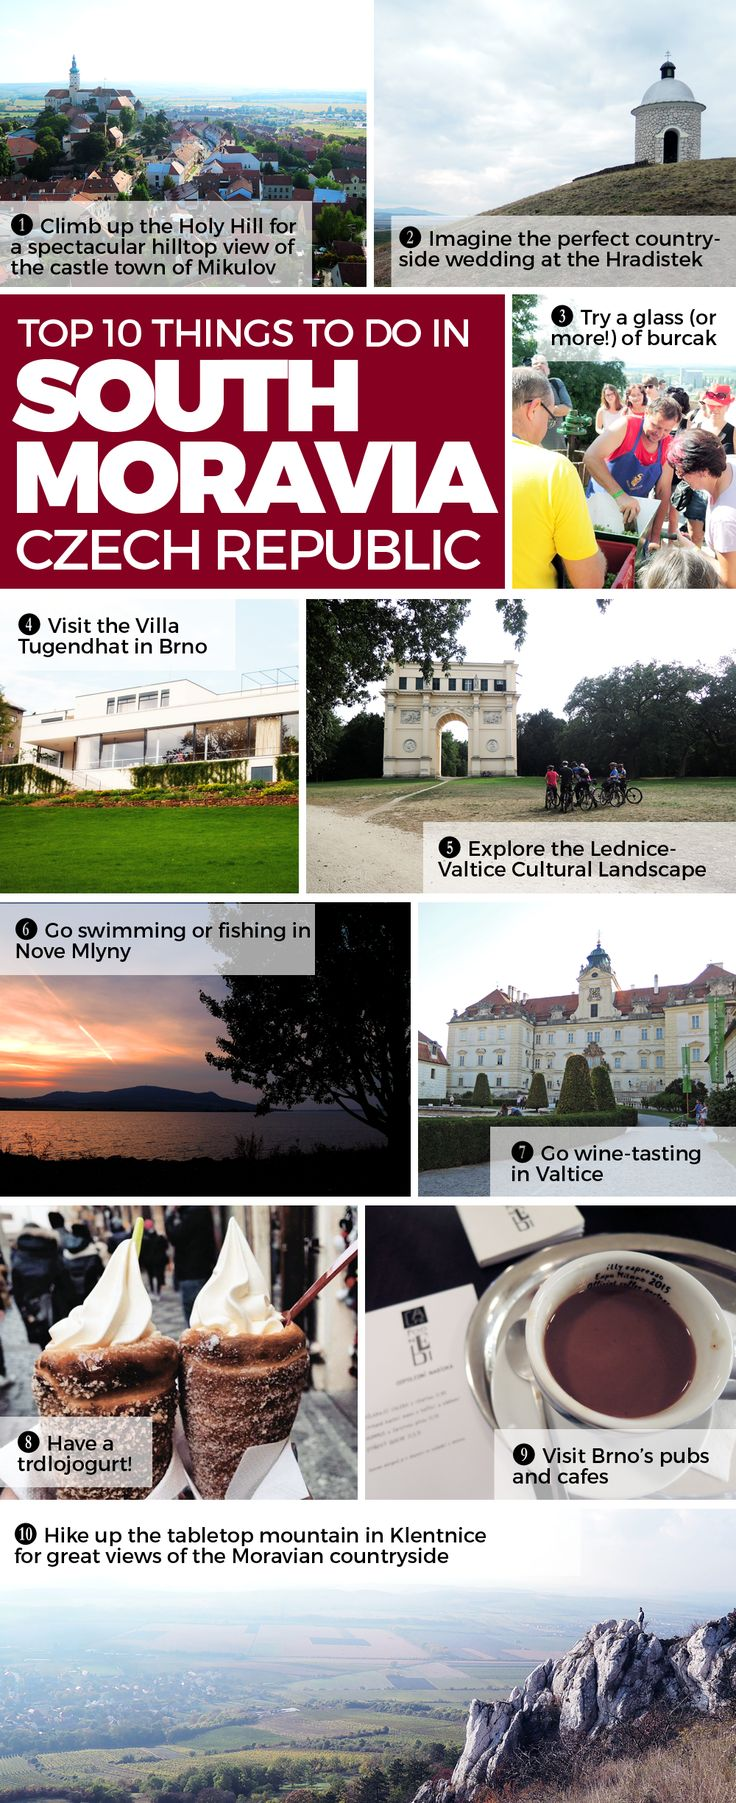 """Are you headed to Central Europe? Here are the top reasons to add South Moravia to your itinerary! If you're going """"South Mora-WHAT?"""", all the more reasons to read on and CZECH OUT the Czech Republic's luscious wine region!"""